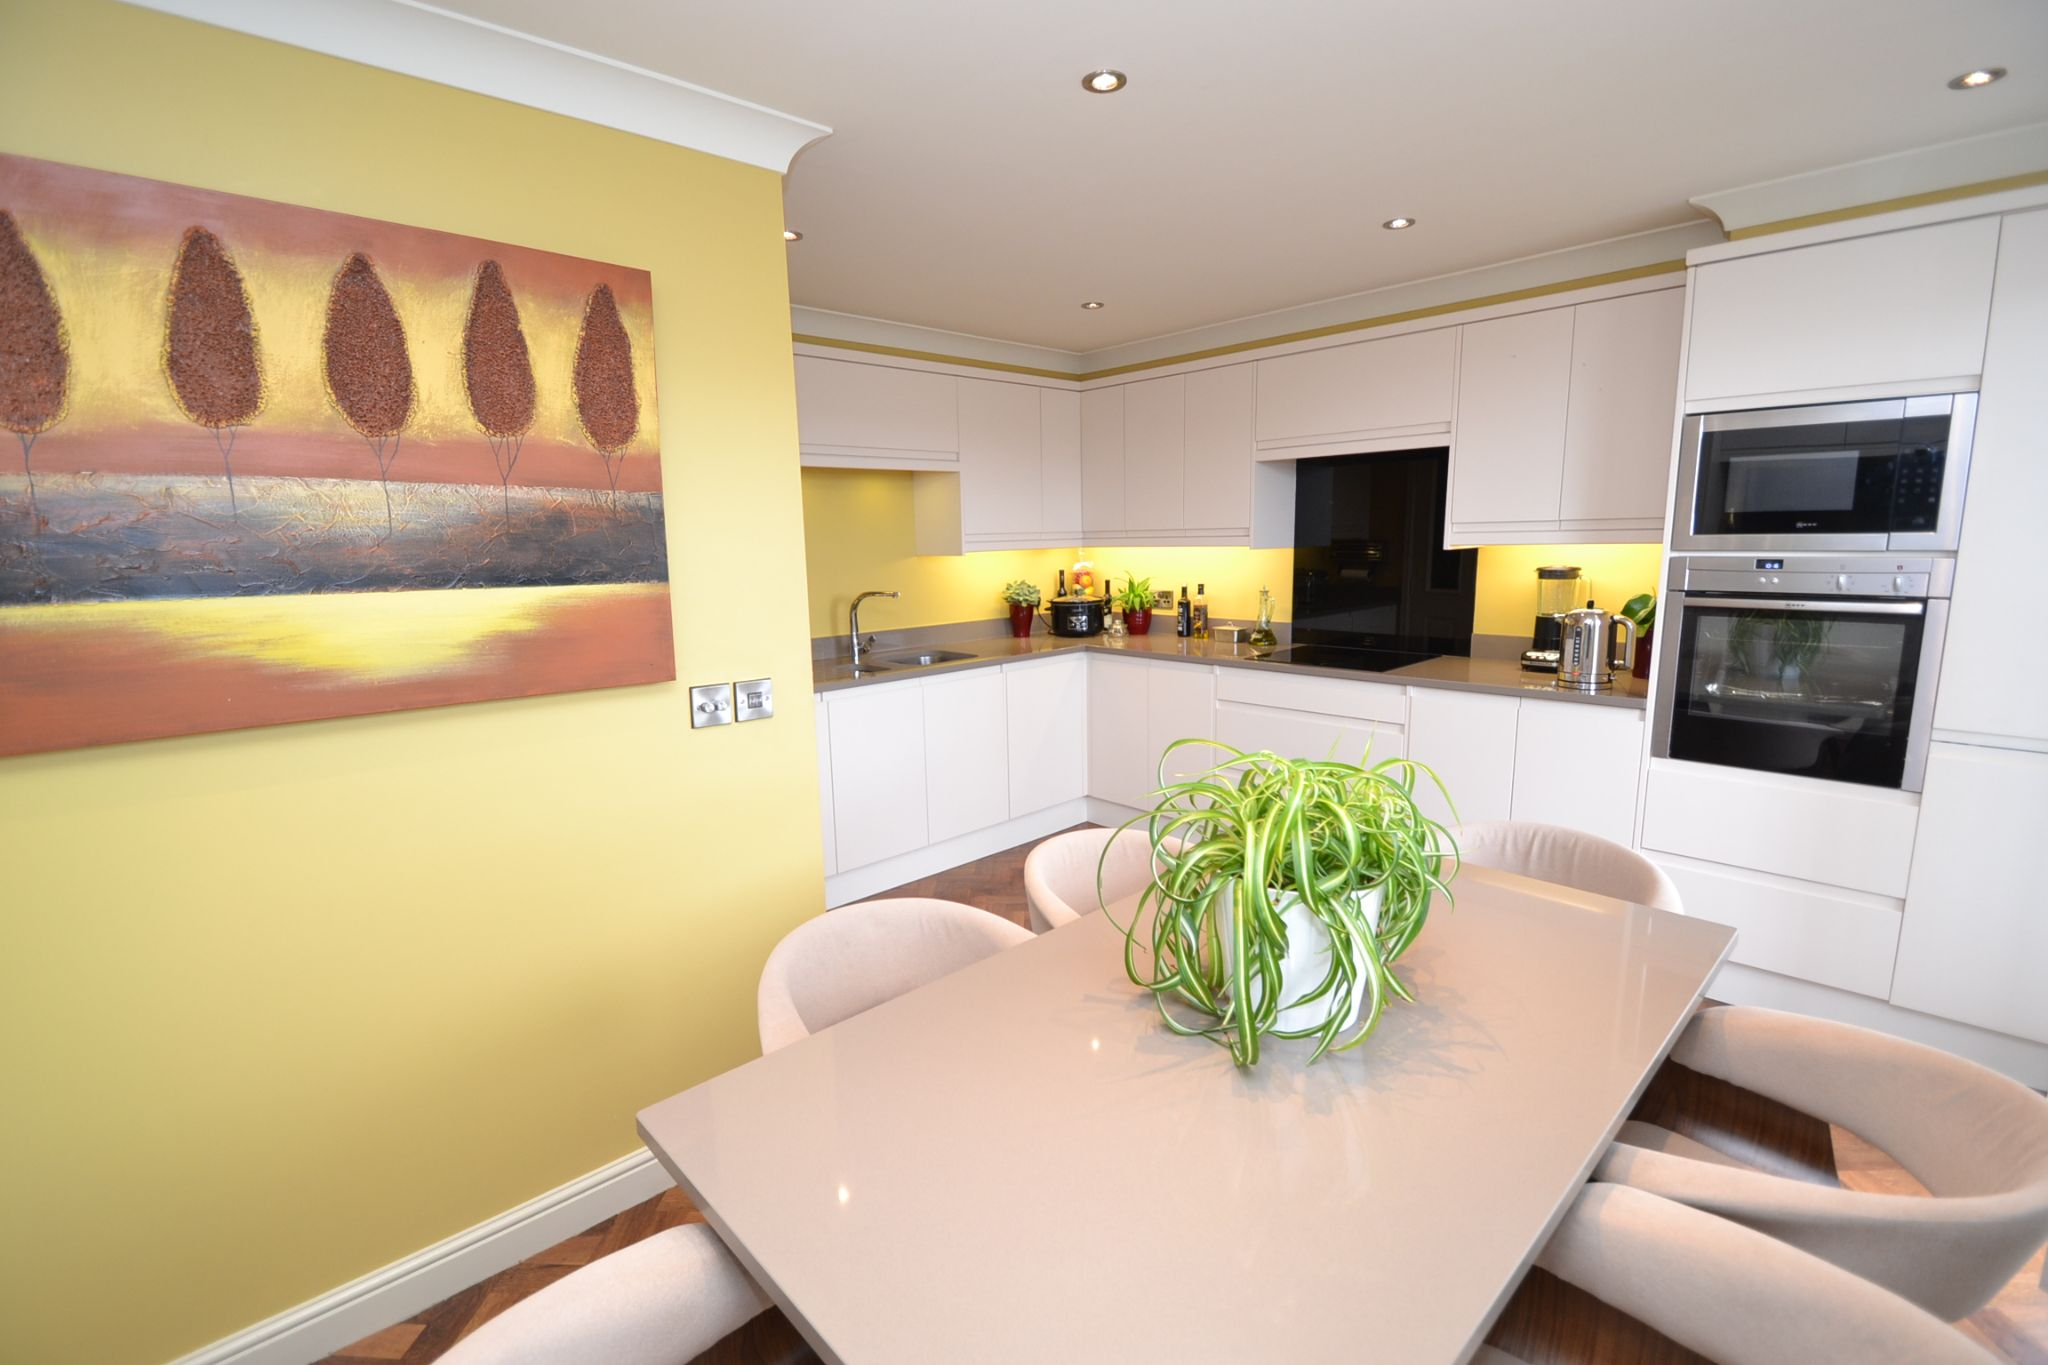 4 Bedroom Semi-detached House For Sale - Photograph 12